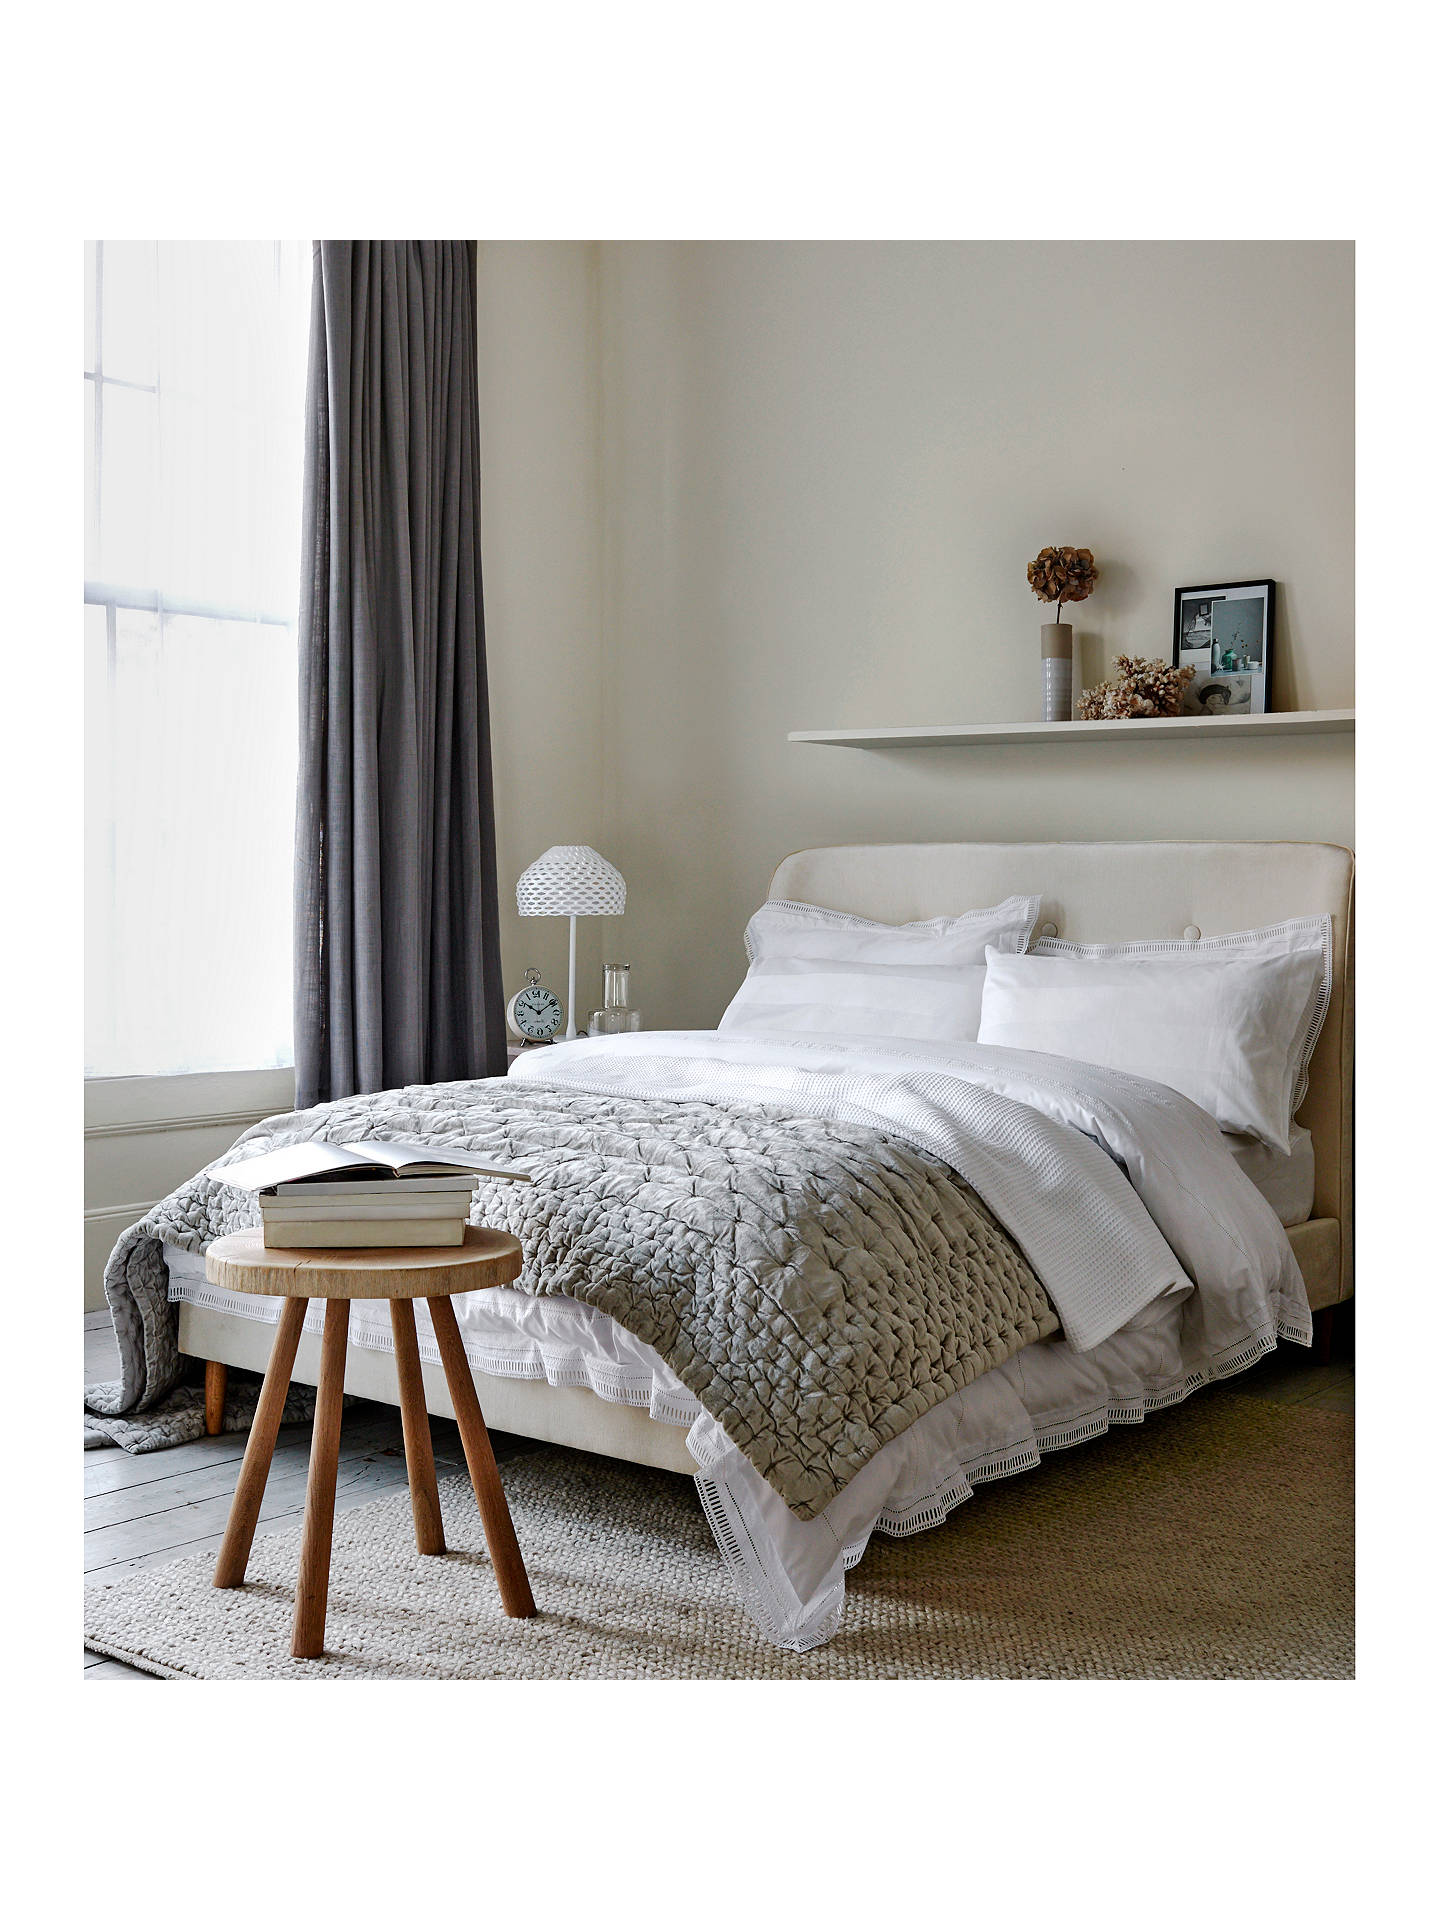 BuyJohn Lewis & Partners Boutique Hotel Velvet Stitch Throw, Steel, L200 x W150cm Online at johnlewis.com